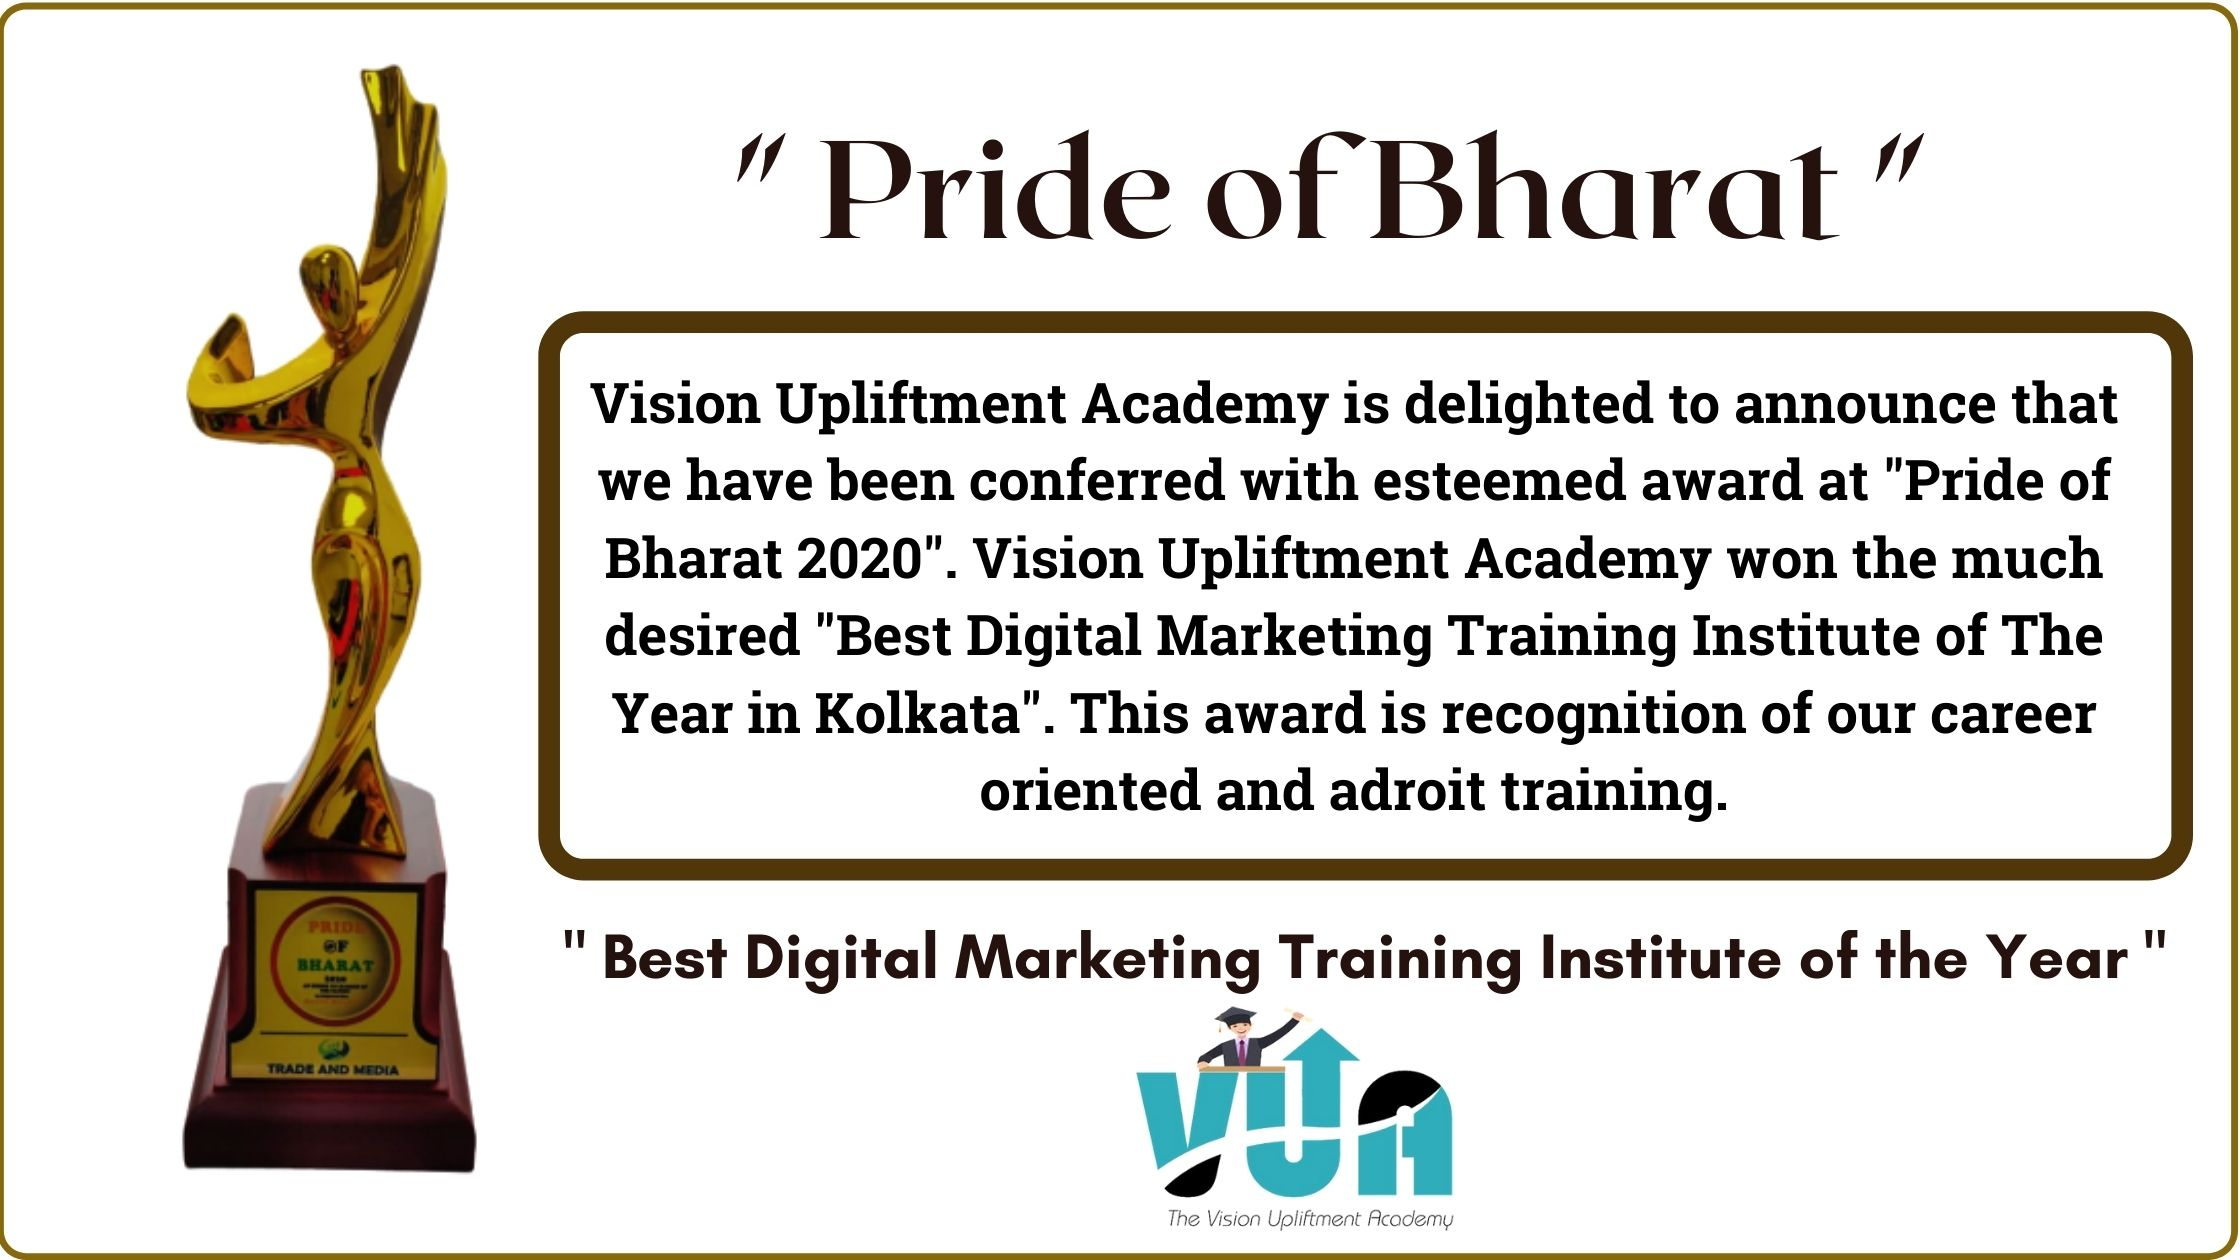 Vision Upliftment Academy is delighted to announce that we have been conferred with esteemed award at _Pride of Bharat 2020_. Vision Upliftment Academy won the much desired _Best Digital Marketing Training In (1)